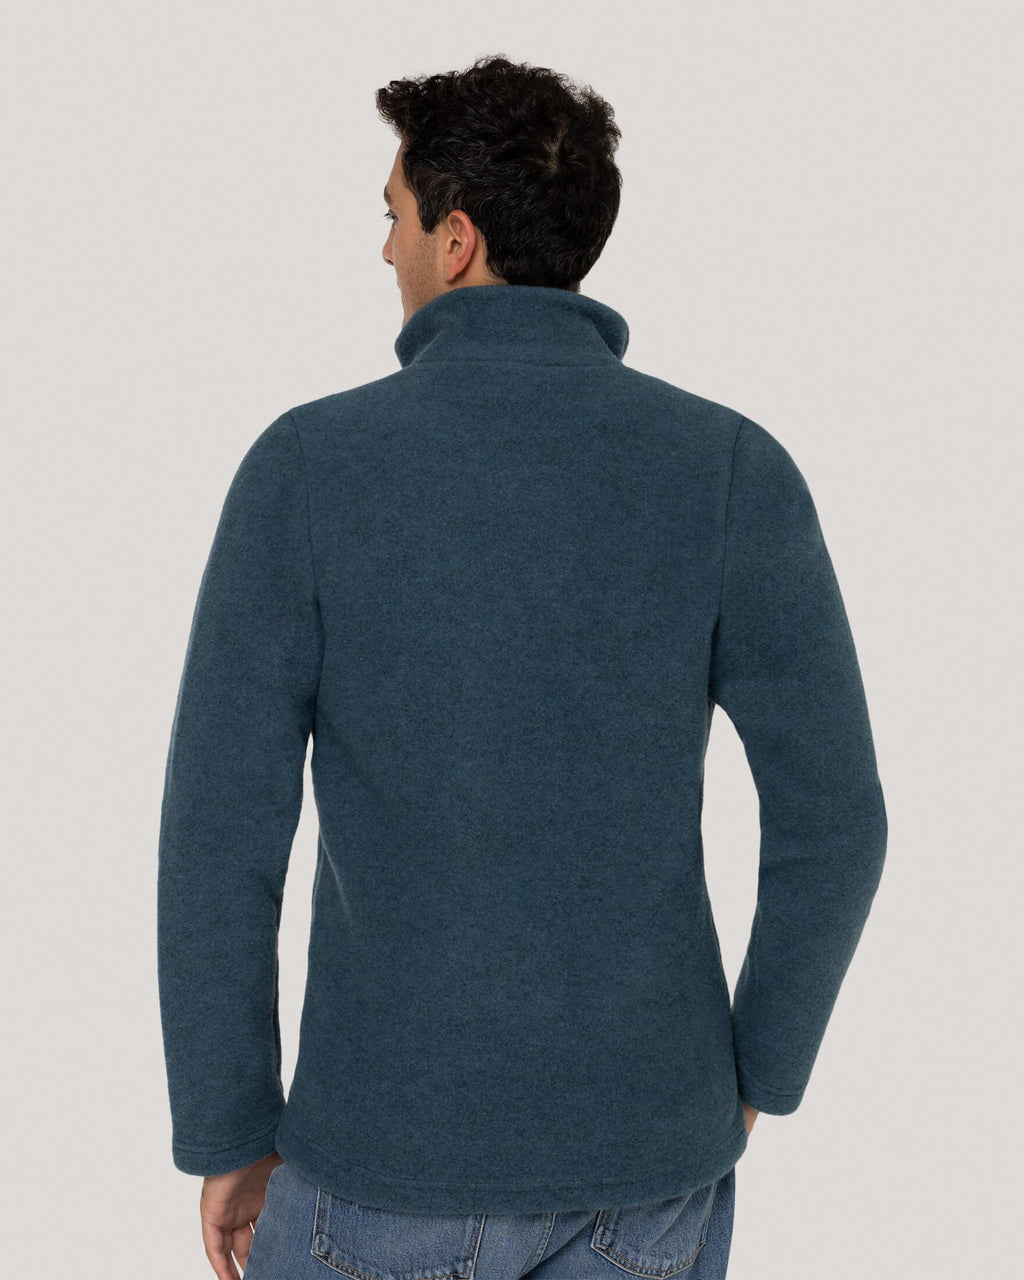 variant_1 | EN Blue Jacket Men | DE Blaue Jacke Herren